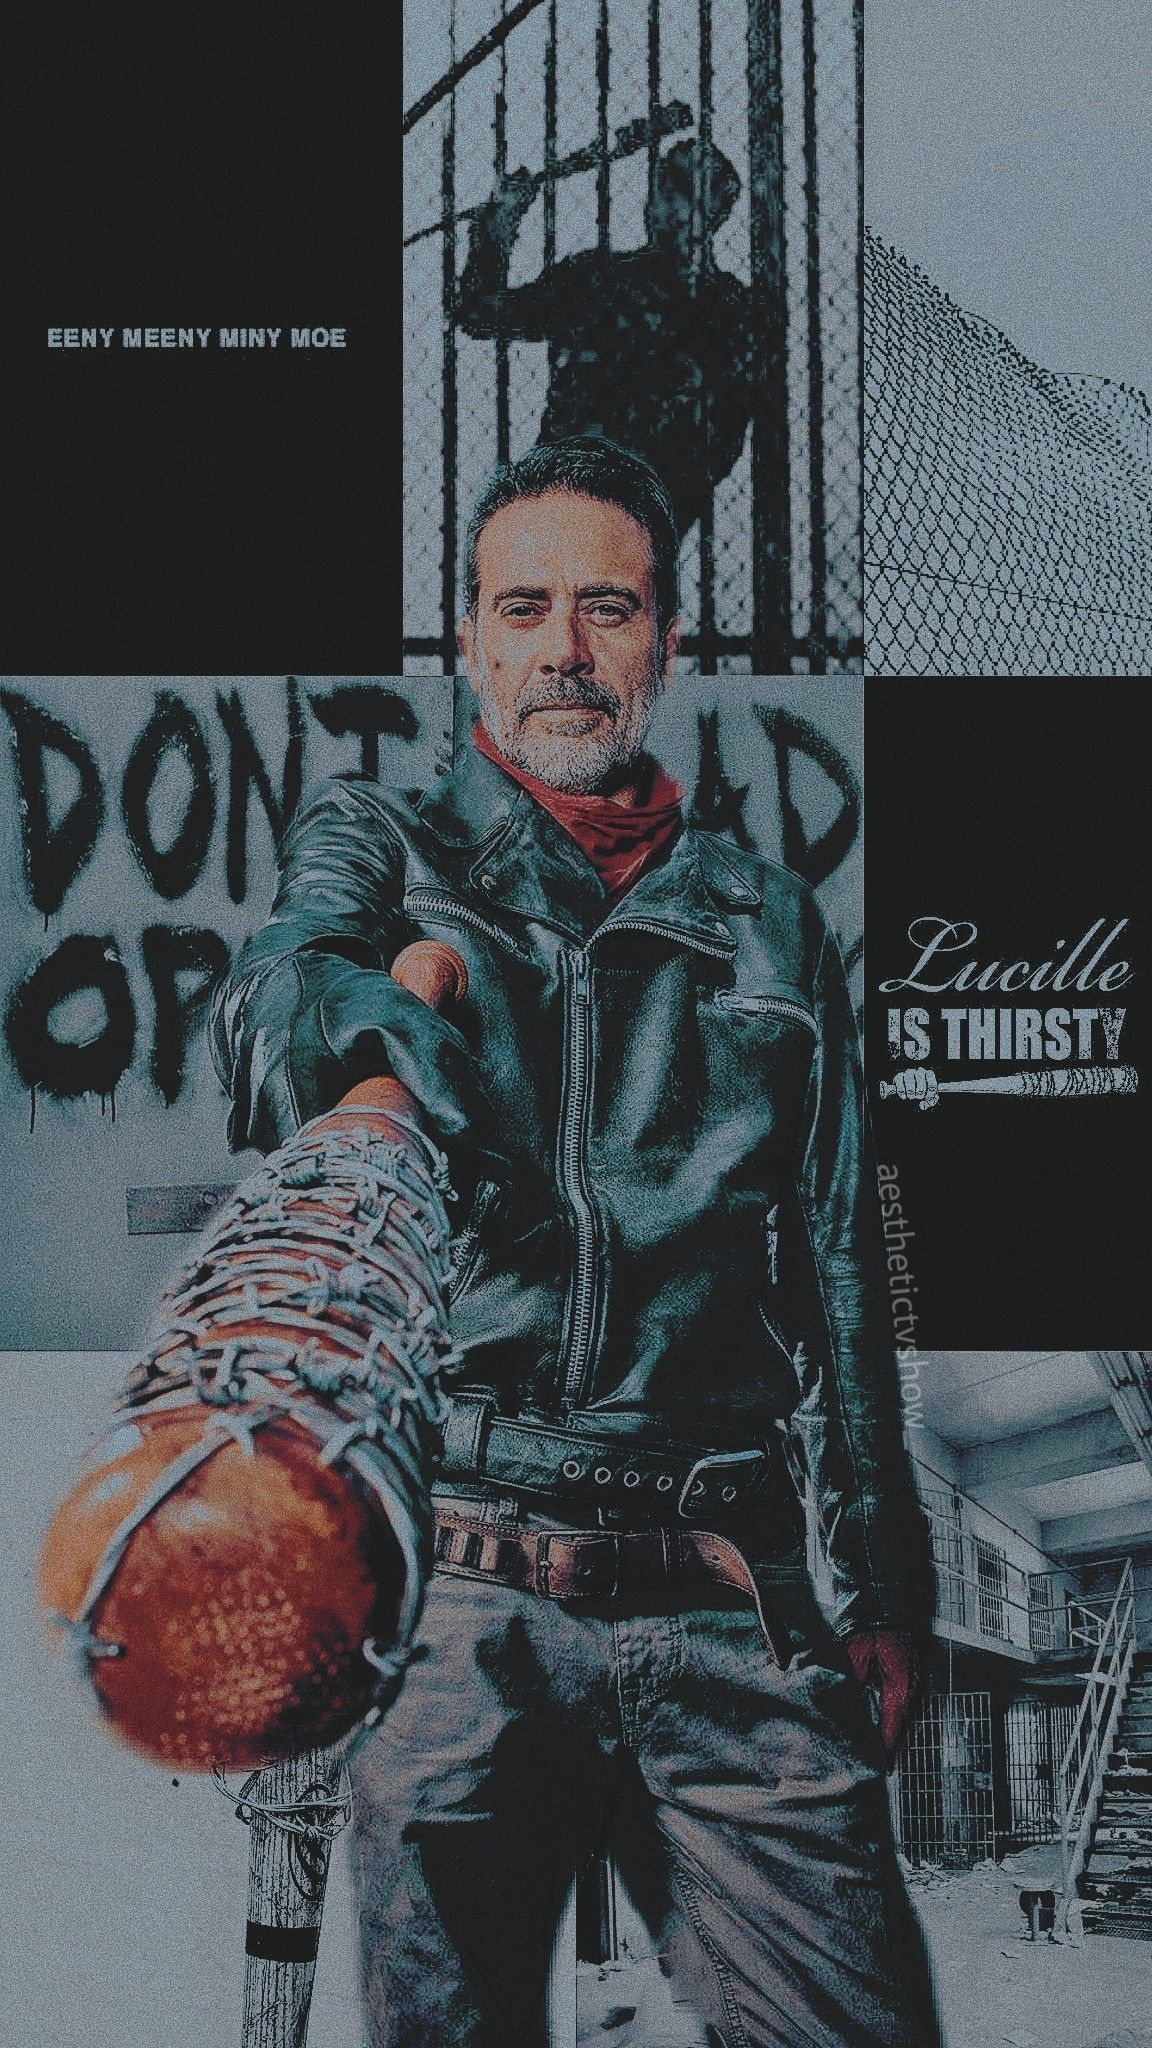 Pin By Daisy On Wallpaper In 2020 Walking Dead Fan Art Negan Walking Dead The Walking Dead Poster